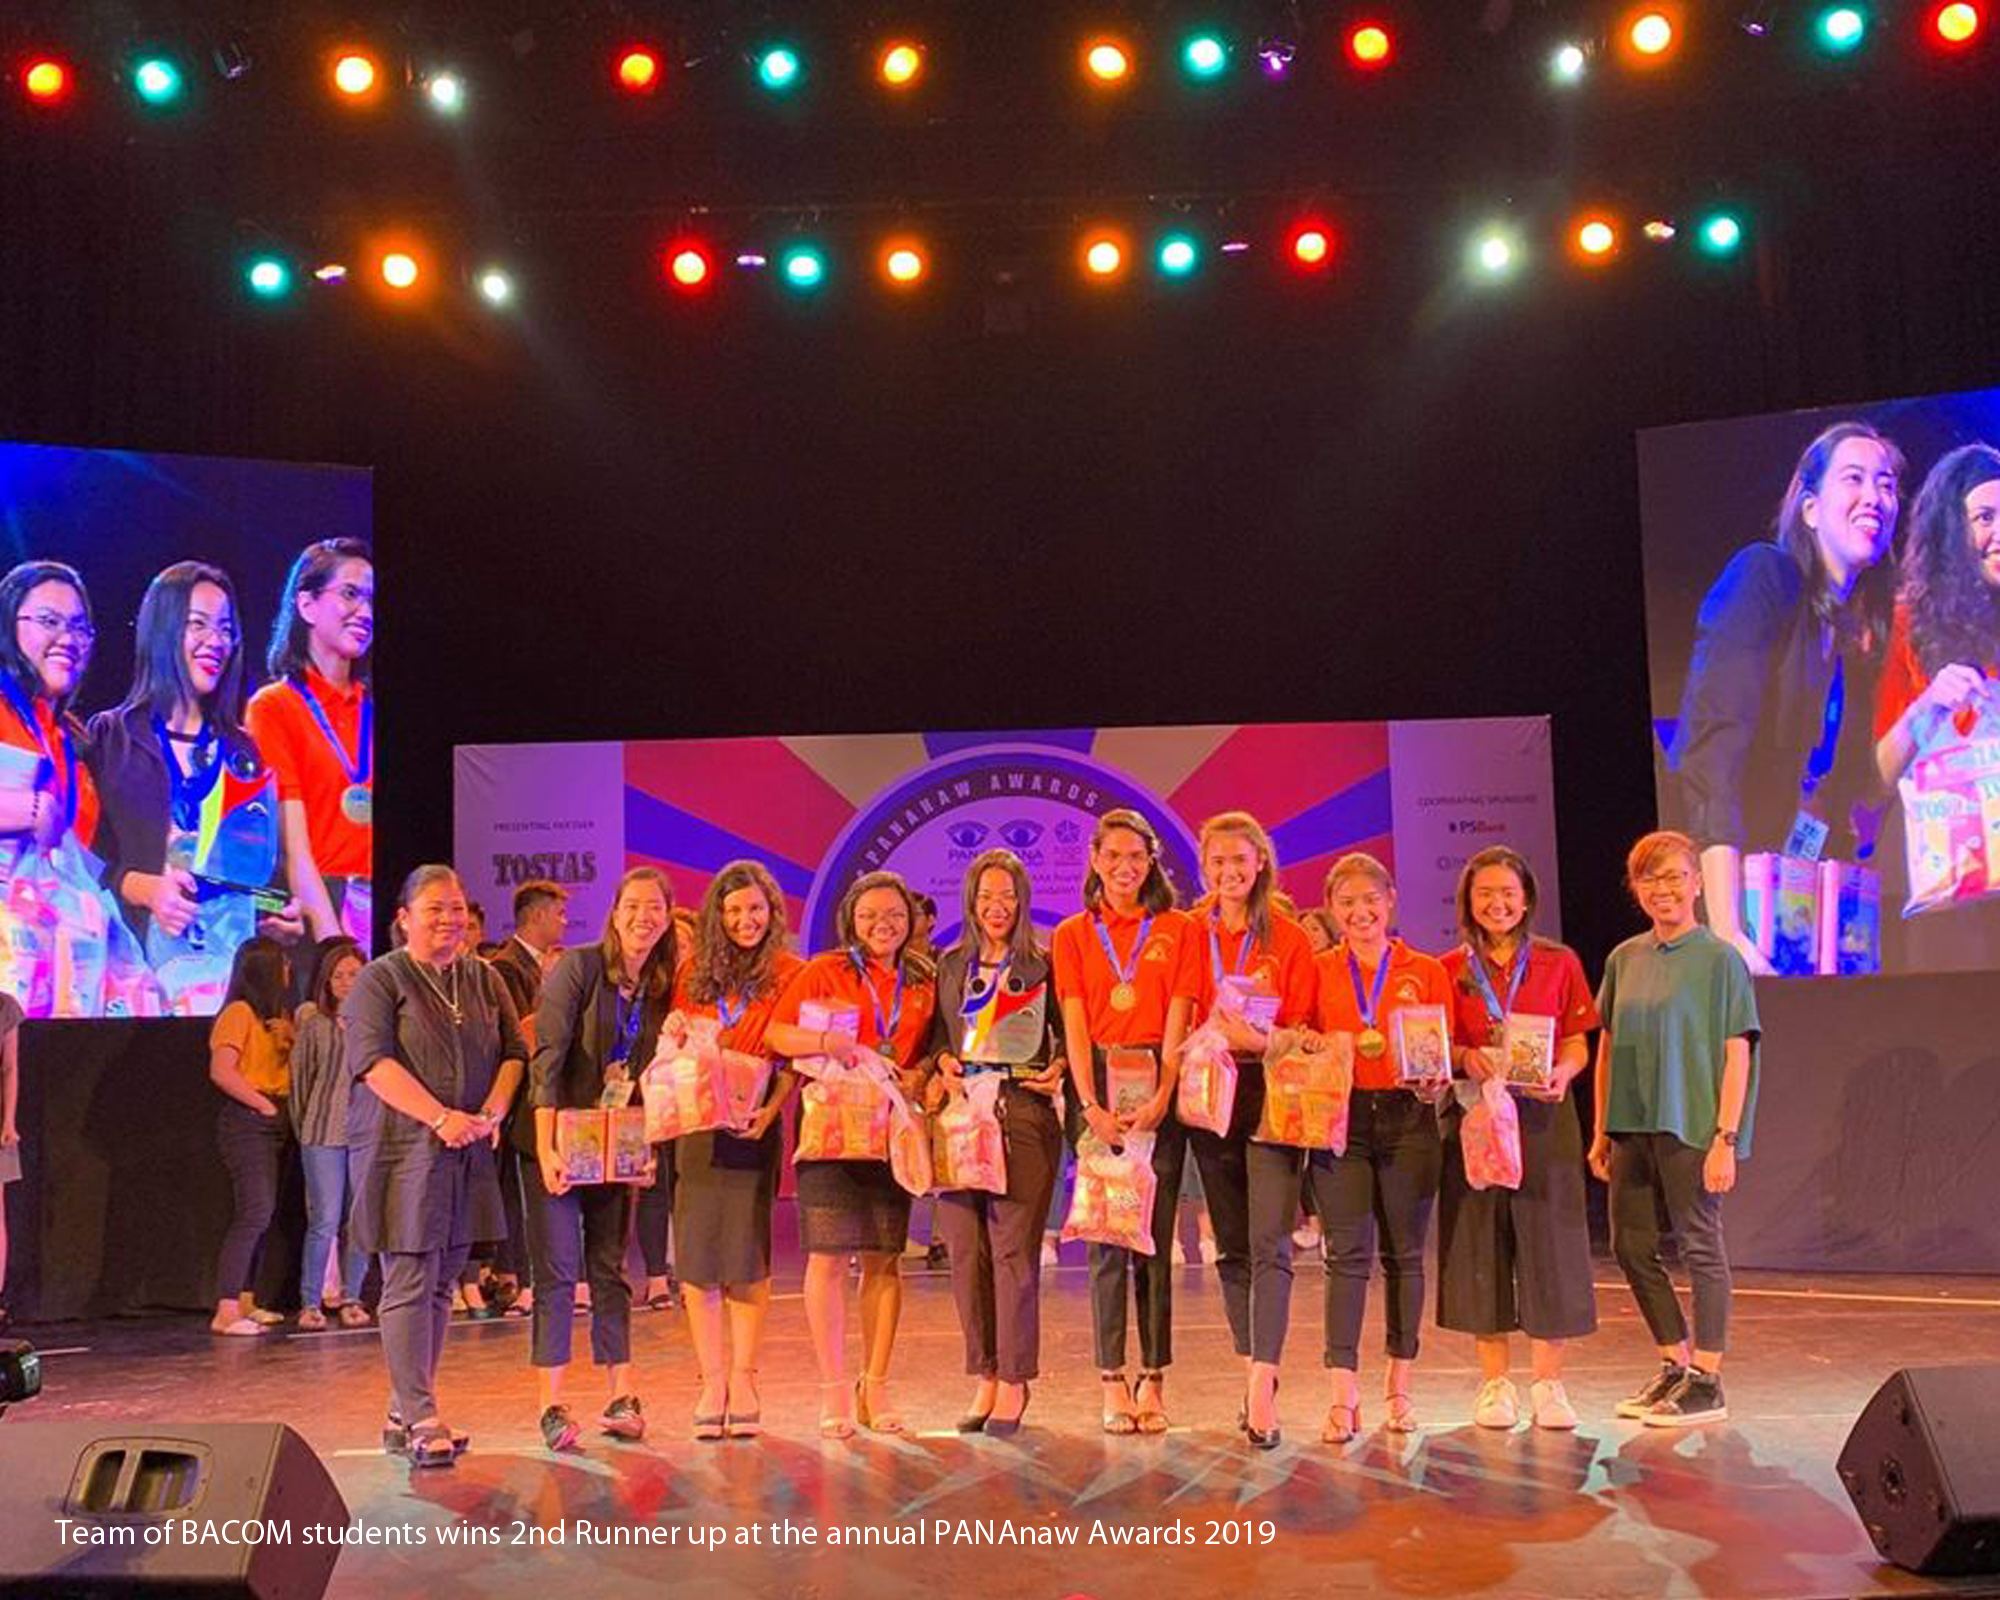 BA Communication students win 2nd runner up in PANAnaw Awards 2019